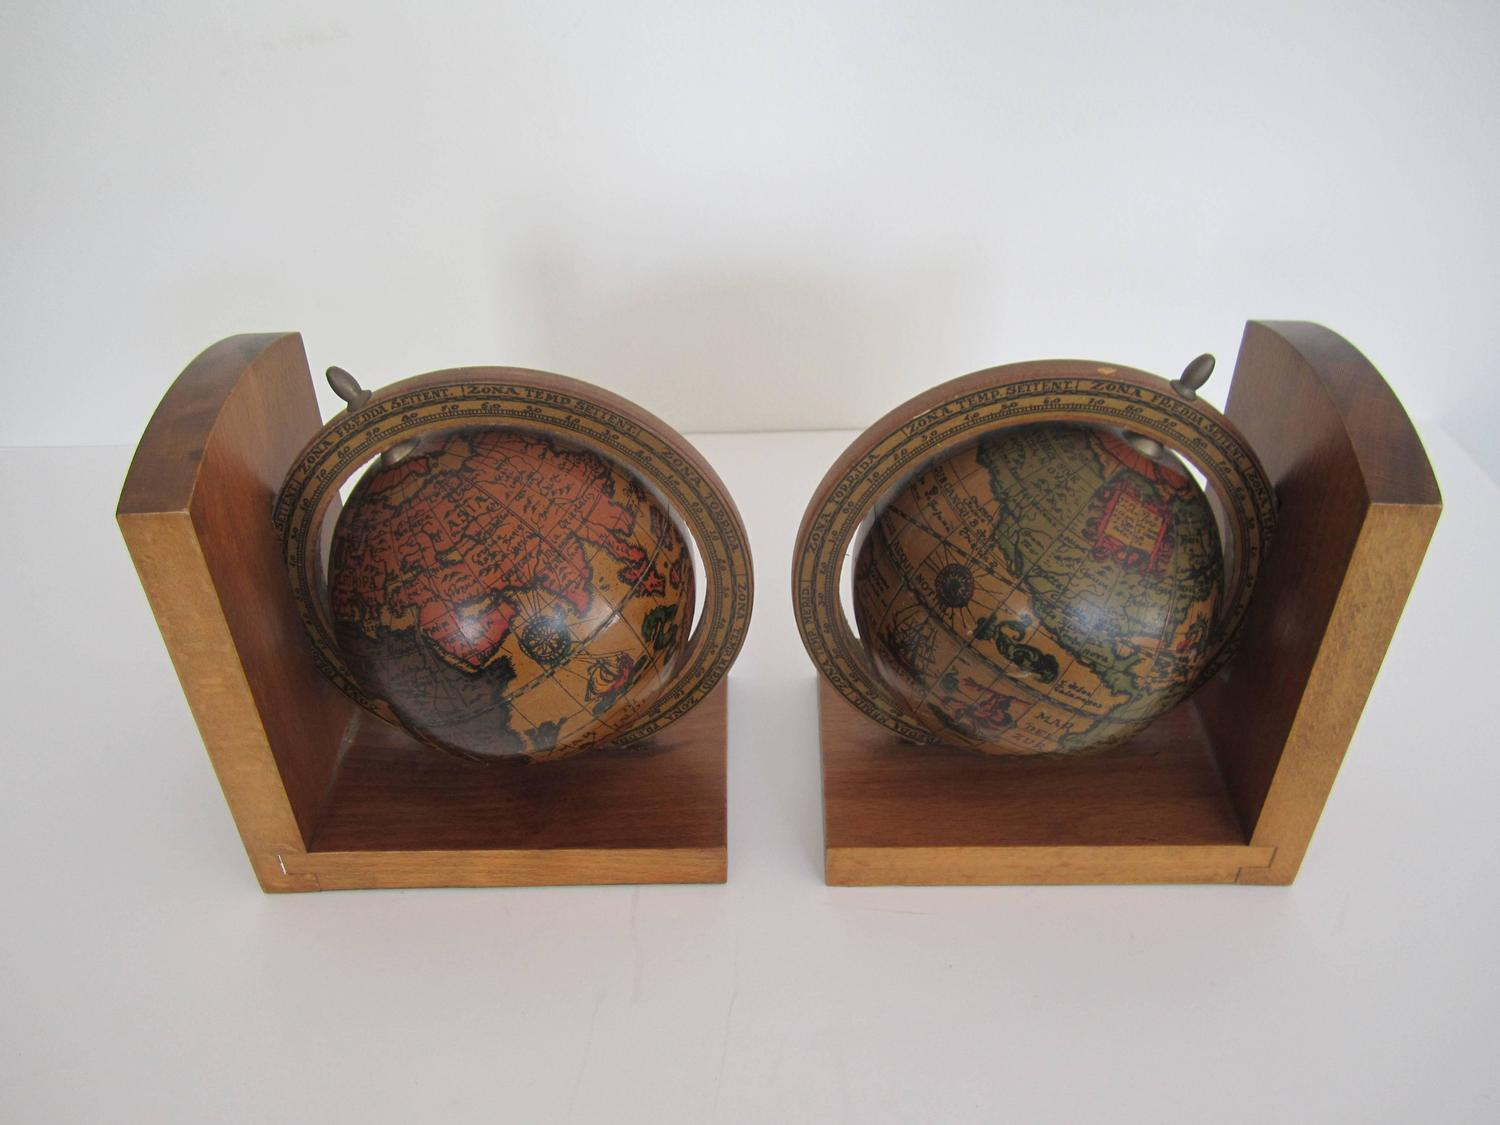 Vintage Spinning World Globe Bookends At 1stdibs